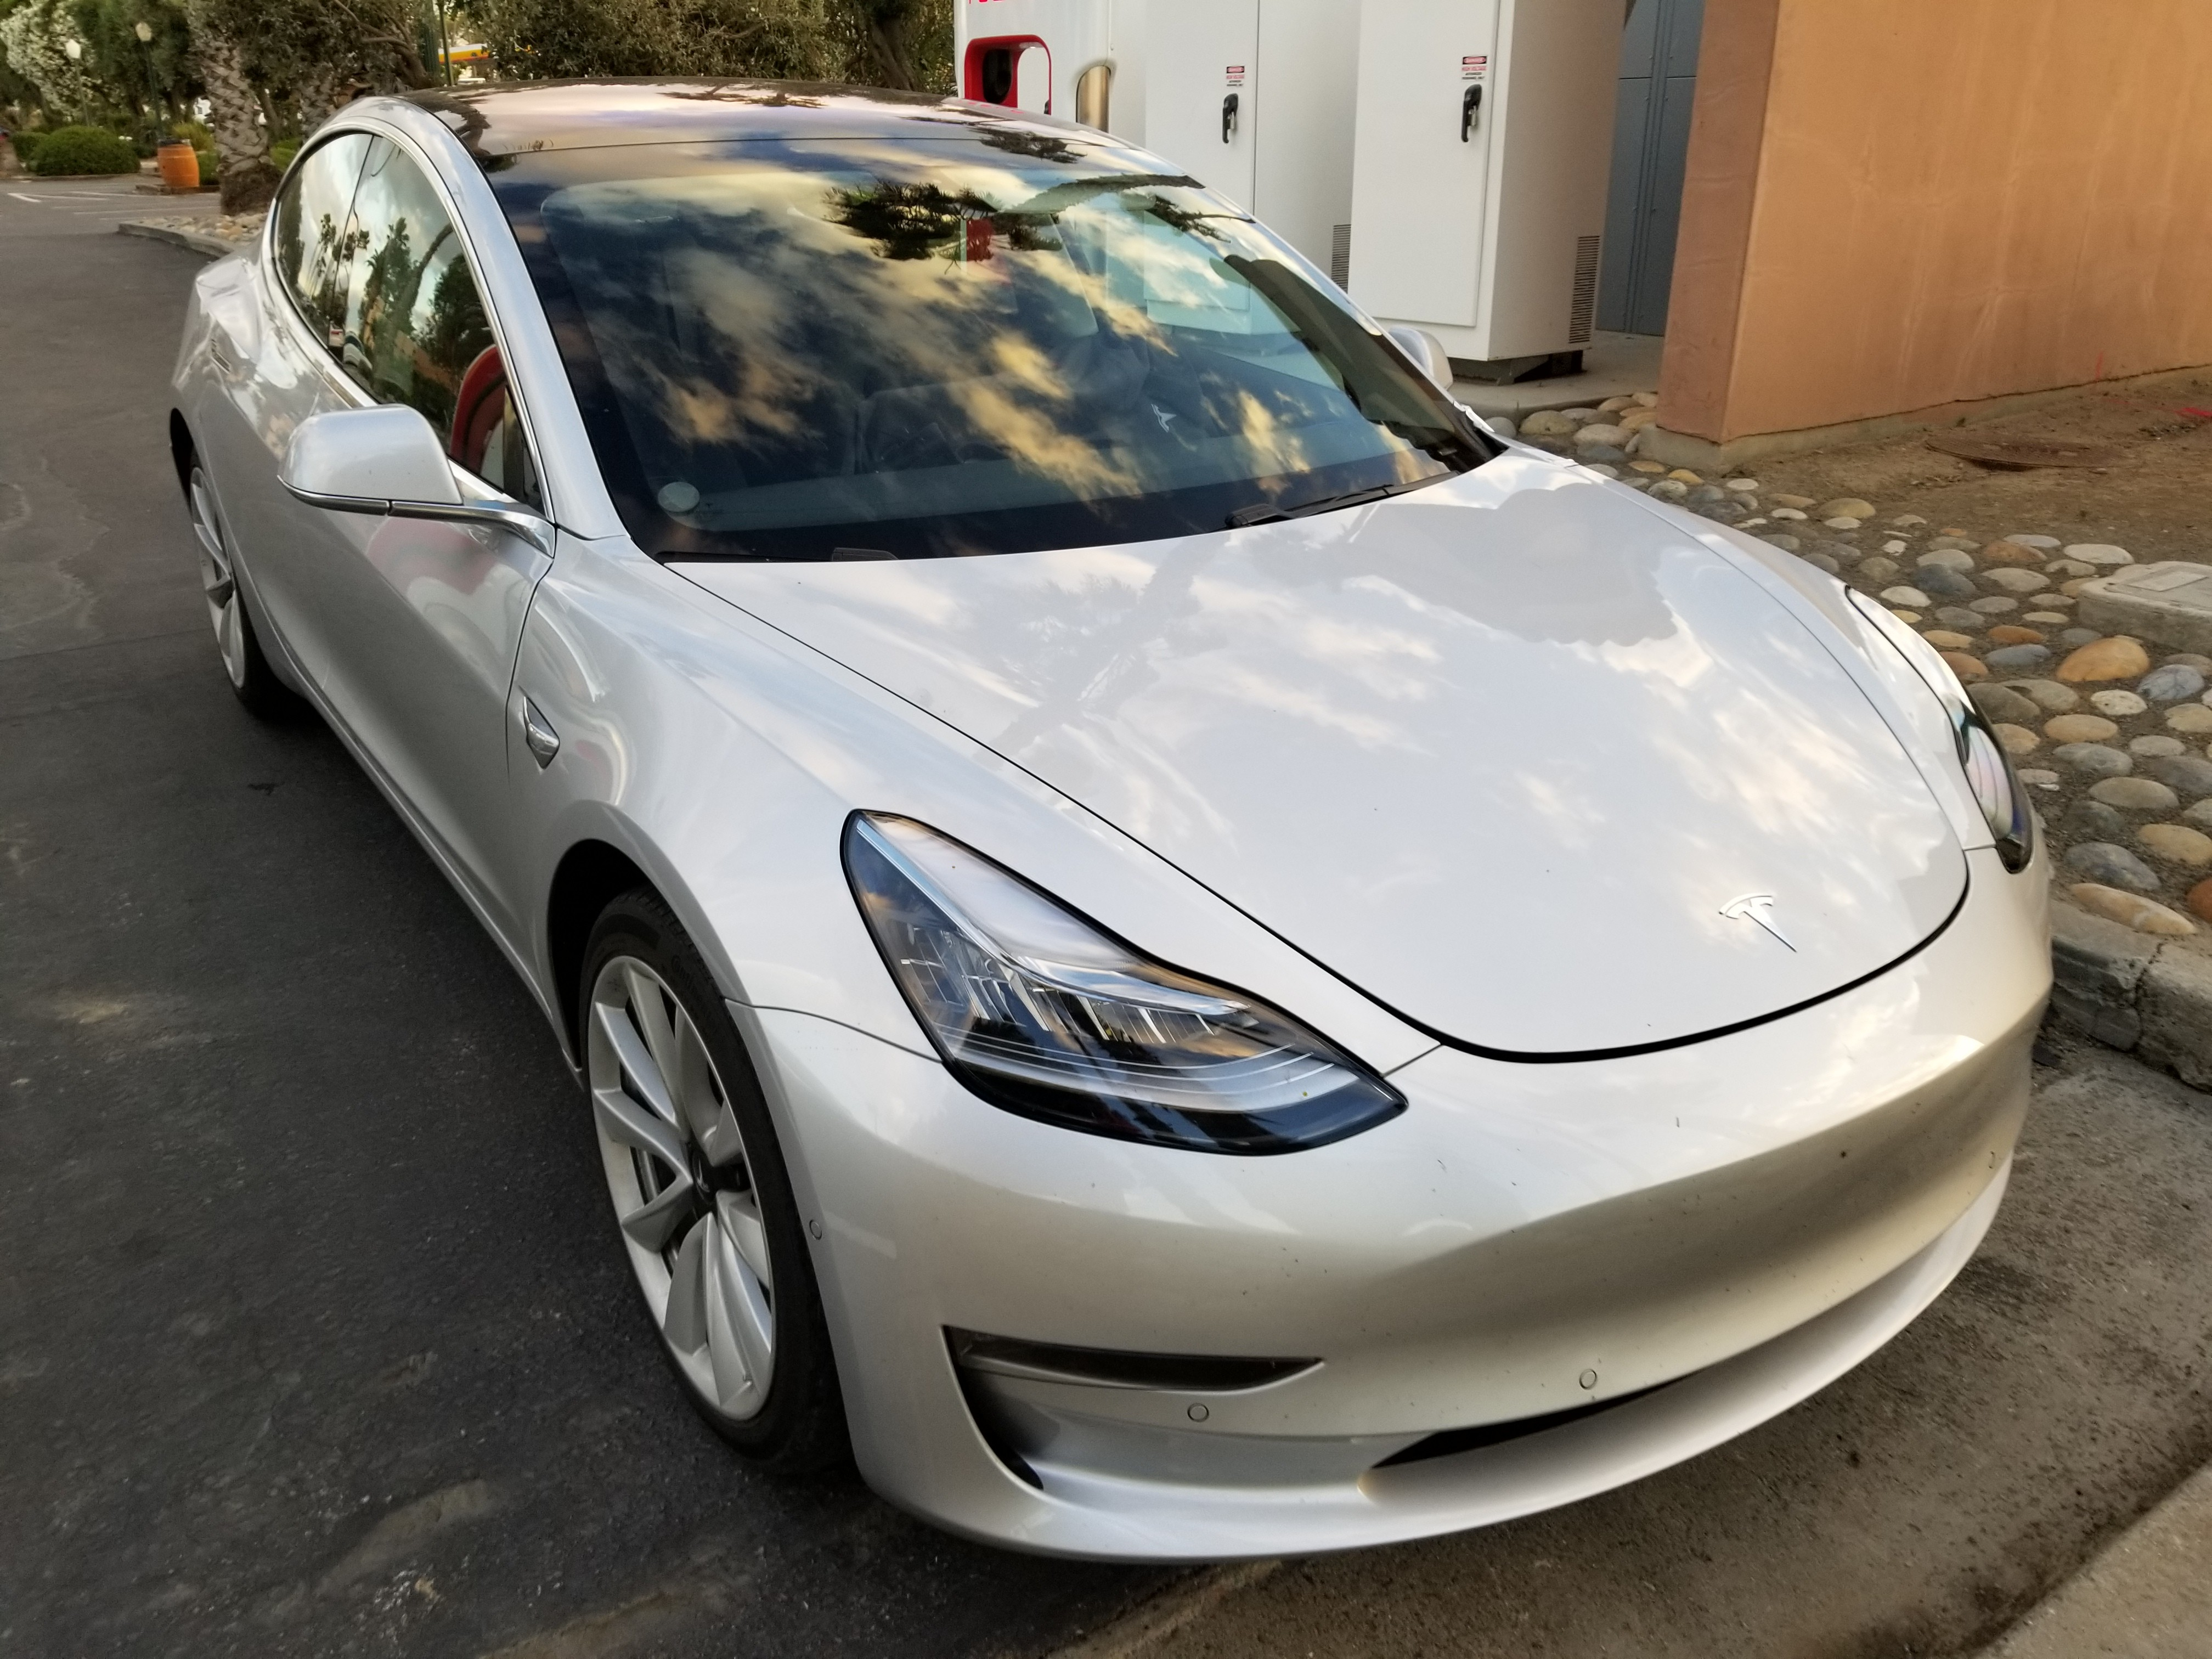 Closest Look Yet At Tesla Model 3 Exposes Panel Gaps